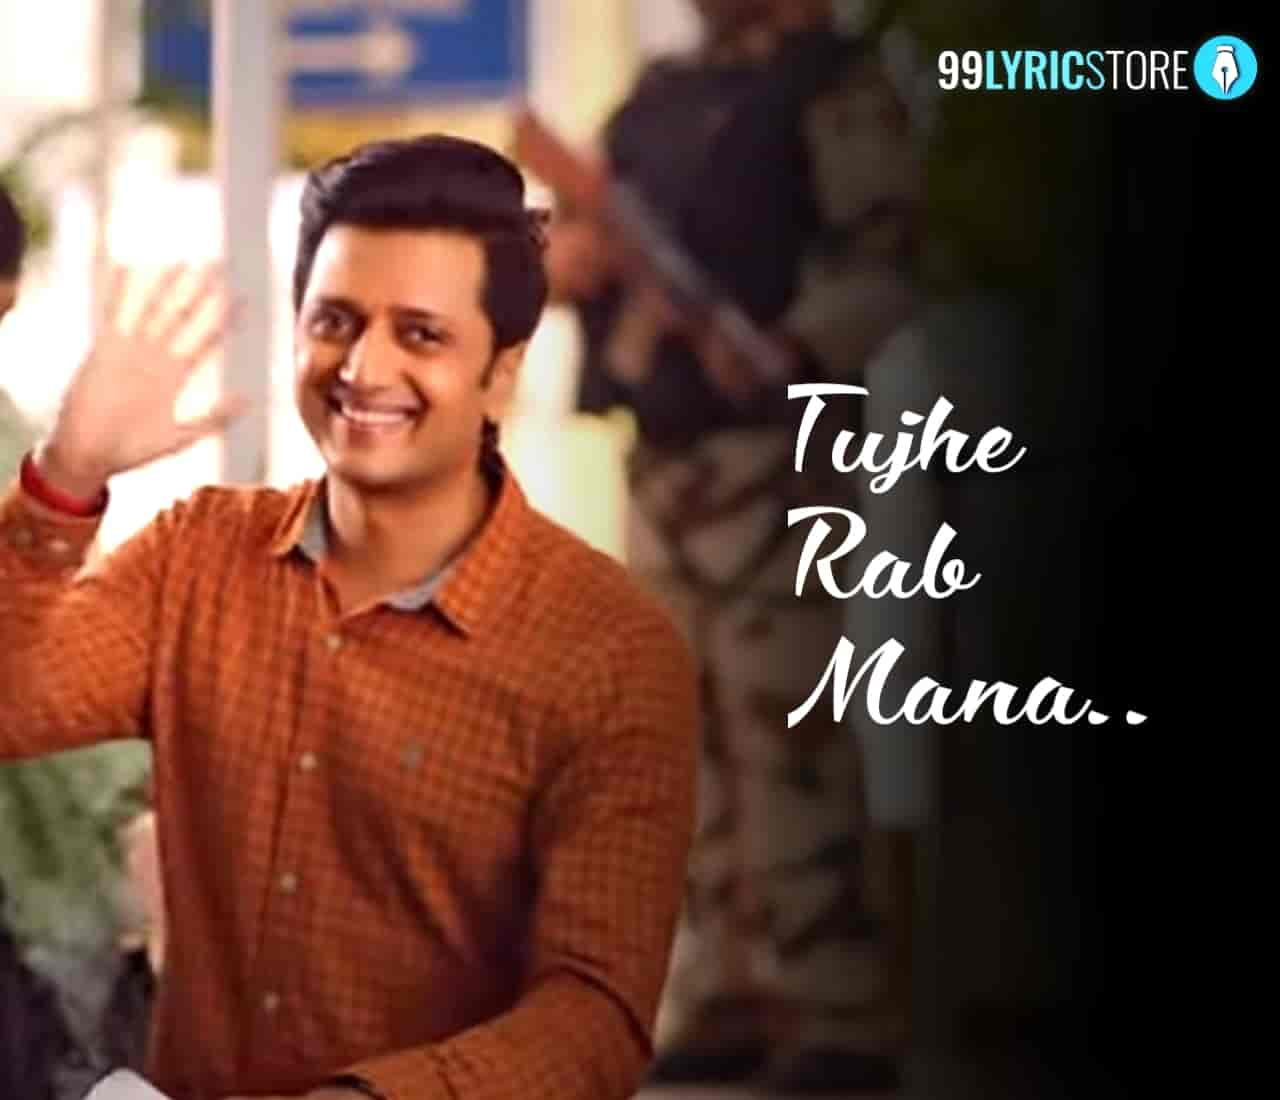 Tujhe Rab Mana Lyrics :- Another beautiful track Tujhe Rab Mana from Tiger Shroff, Shraddha Kapoor and Ritesh Deshmukh starrer movie Baaghi 3 which sung in the voice of Rochak feat. Shaan. Music of this song also given by Rochak Kohli while this beautiful song Tujhe Rab Mana Lyrics has written by Gurpreet Saini and Gaurav G Sharma. This song is presented by T-Series label.